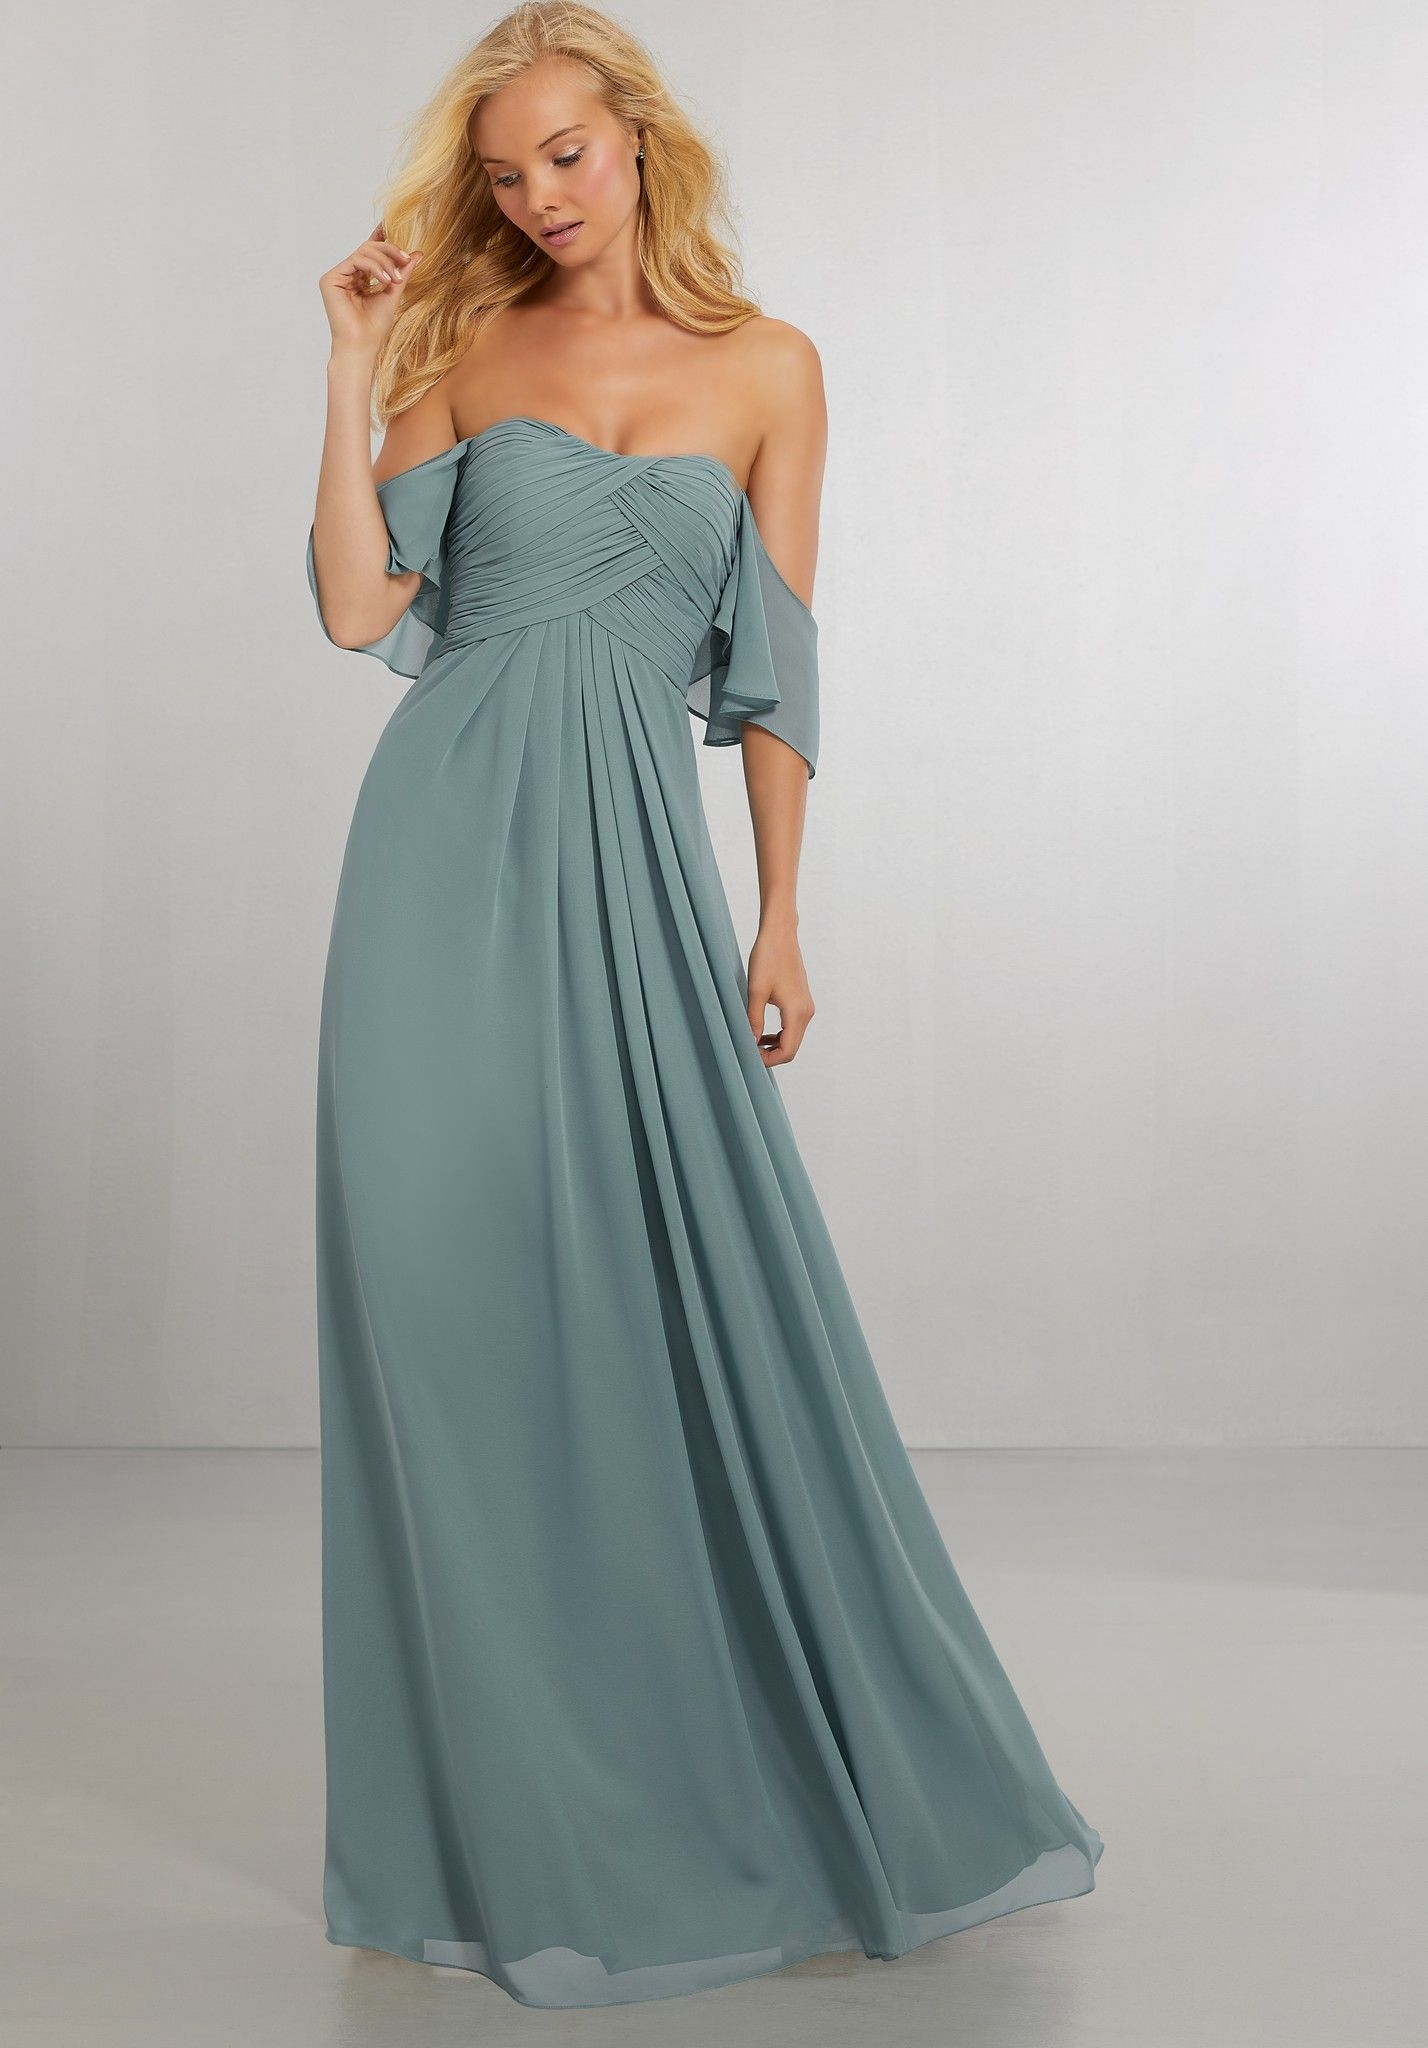 Boho chic chiffon bridesmaids dress with off the shoulder neckline